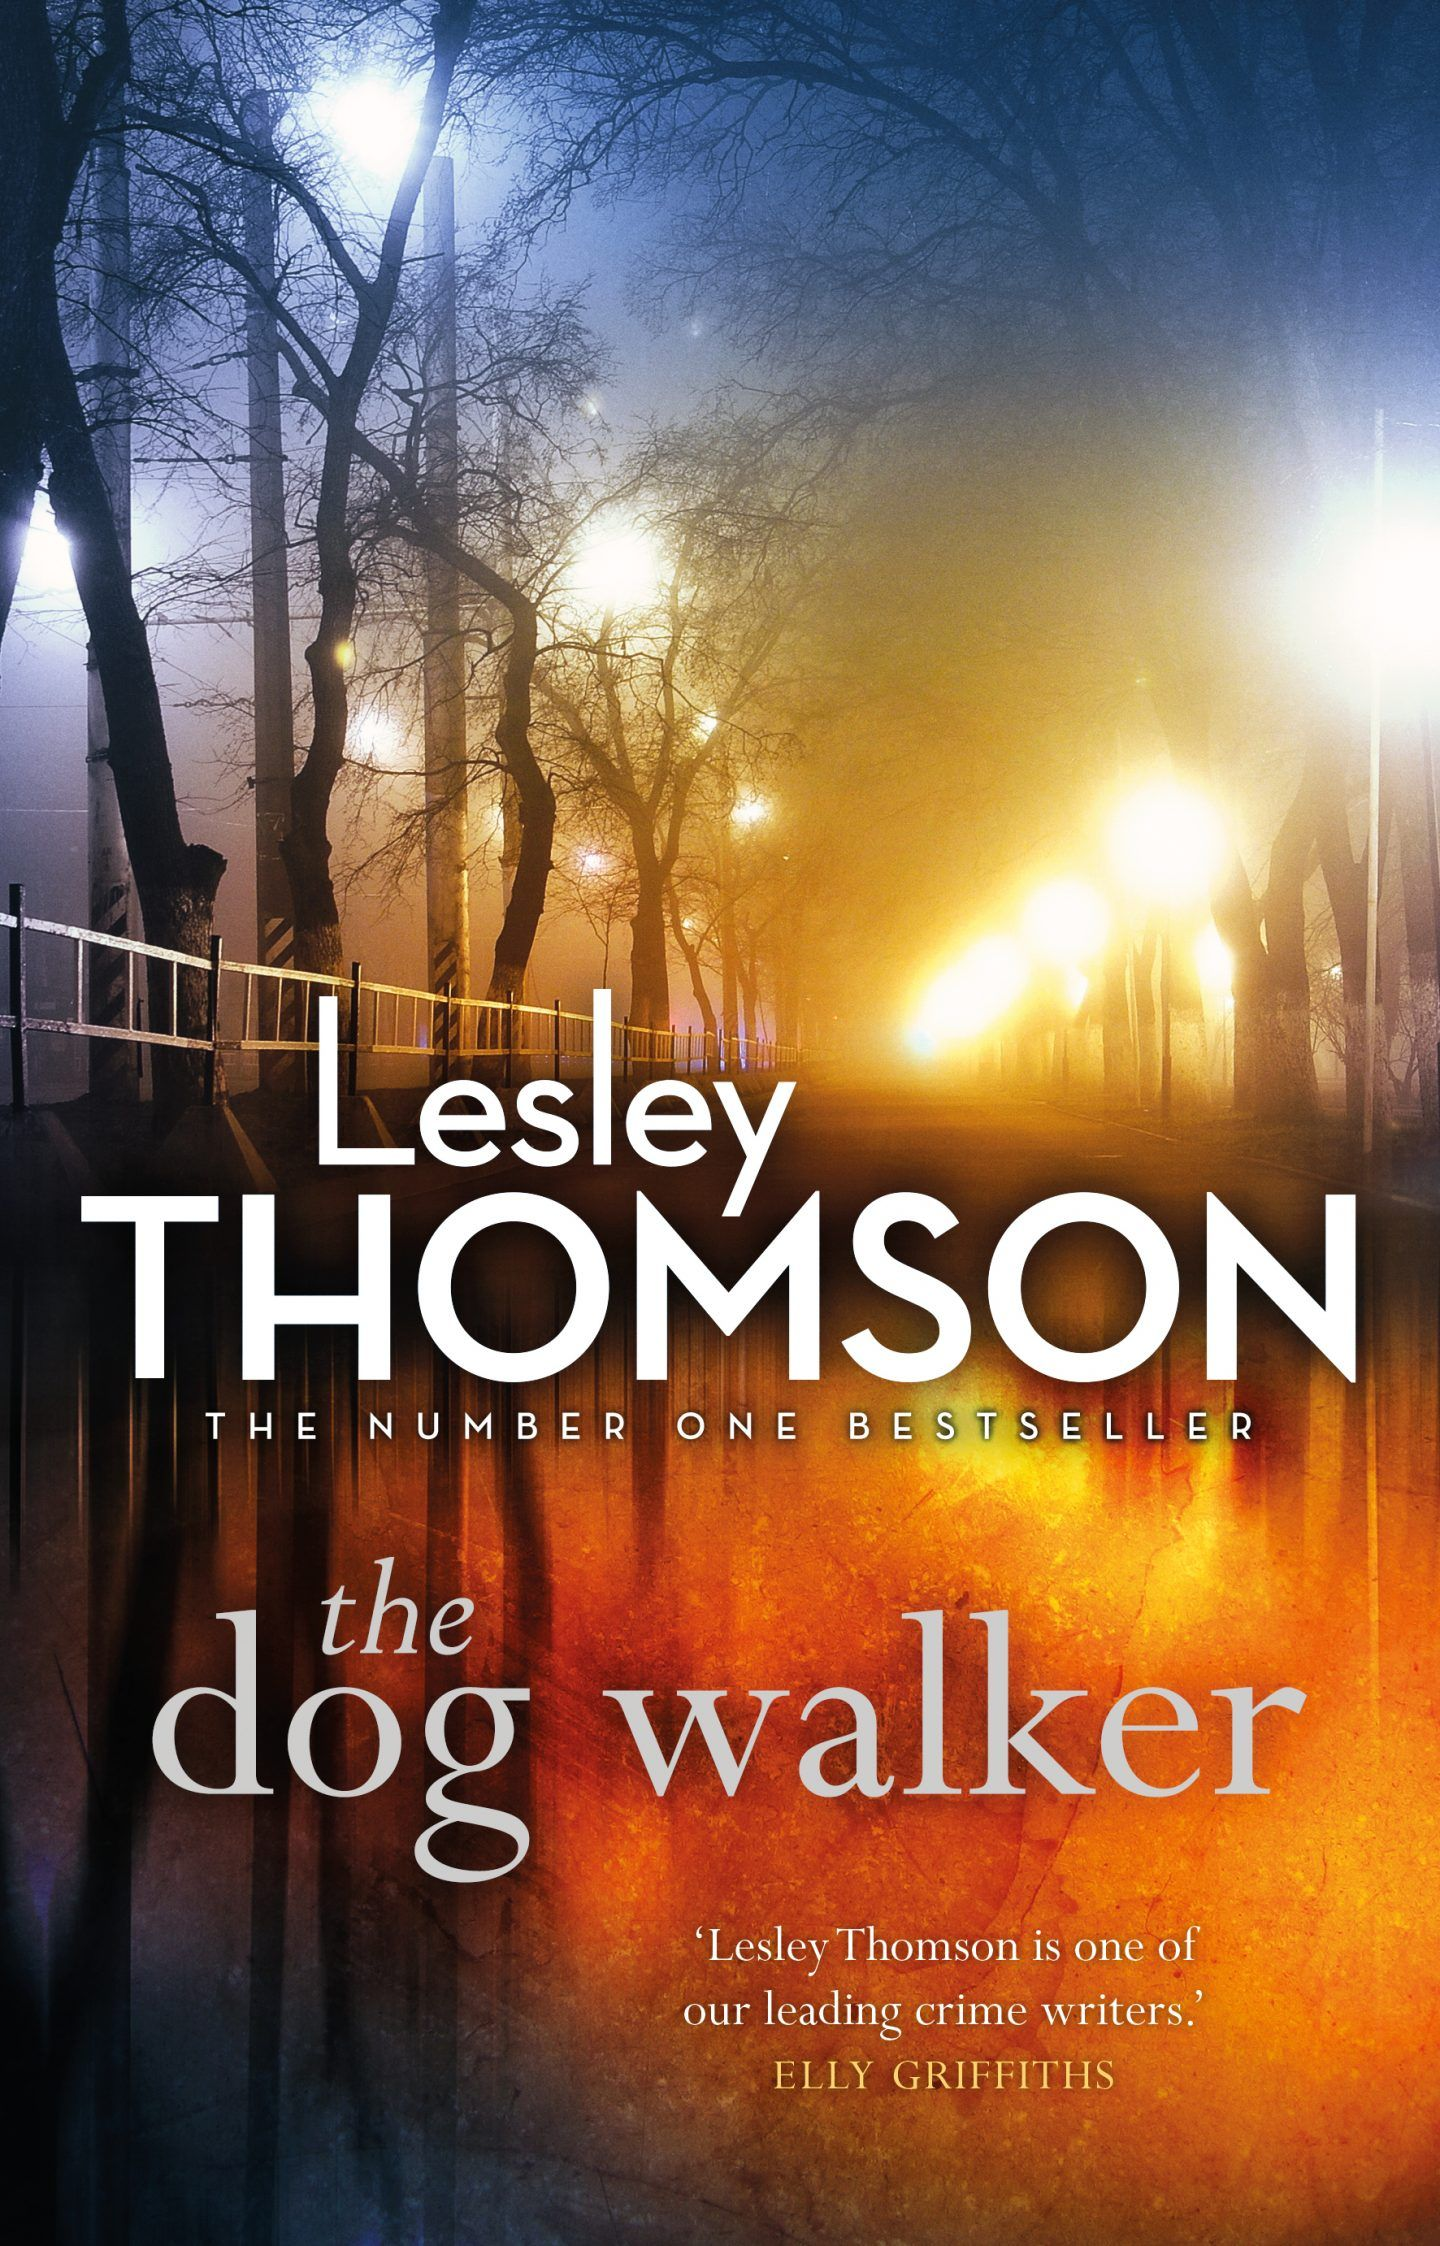 Book Review & Giveaway - The Dog Walker by Lesley Thomson | Book